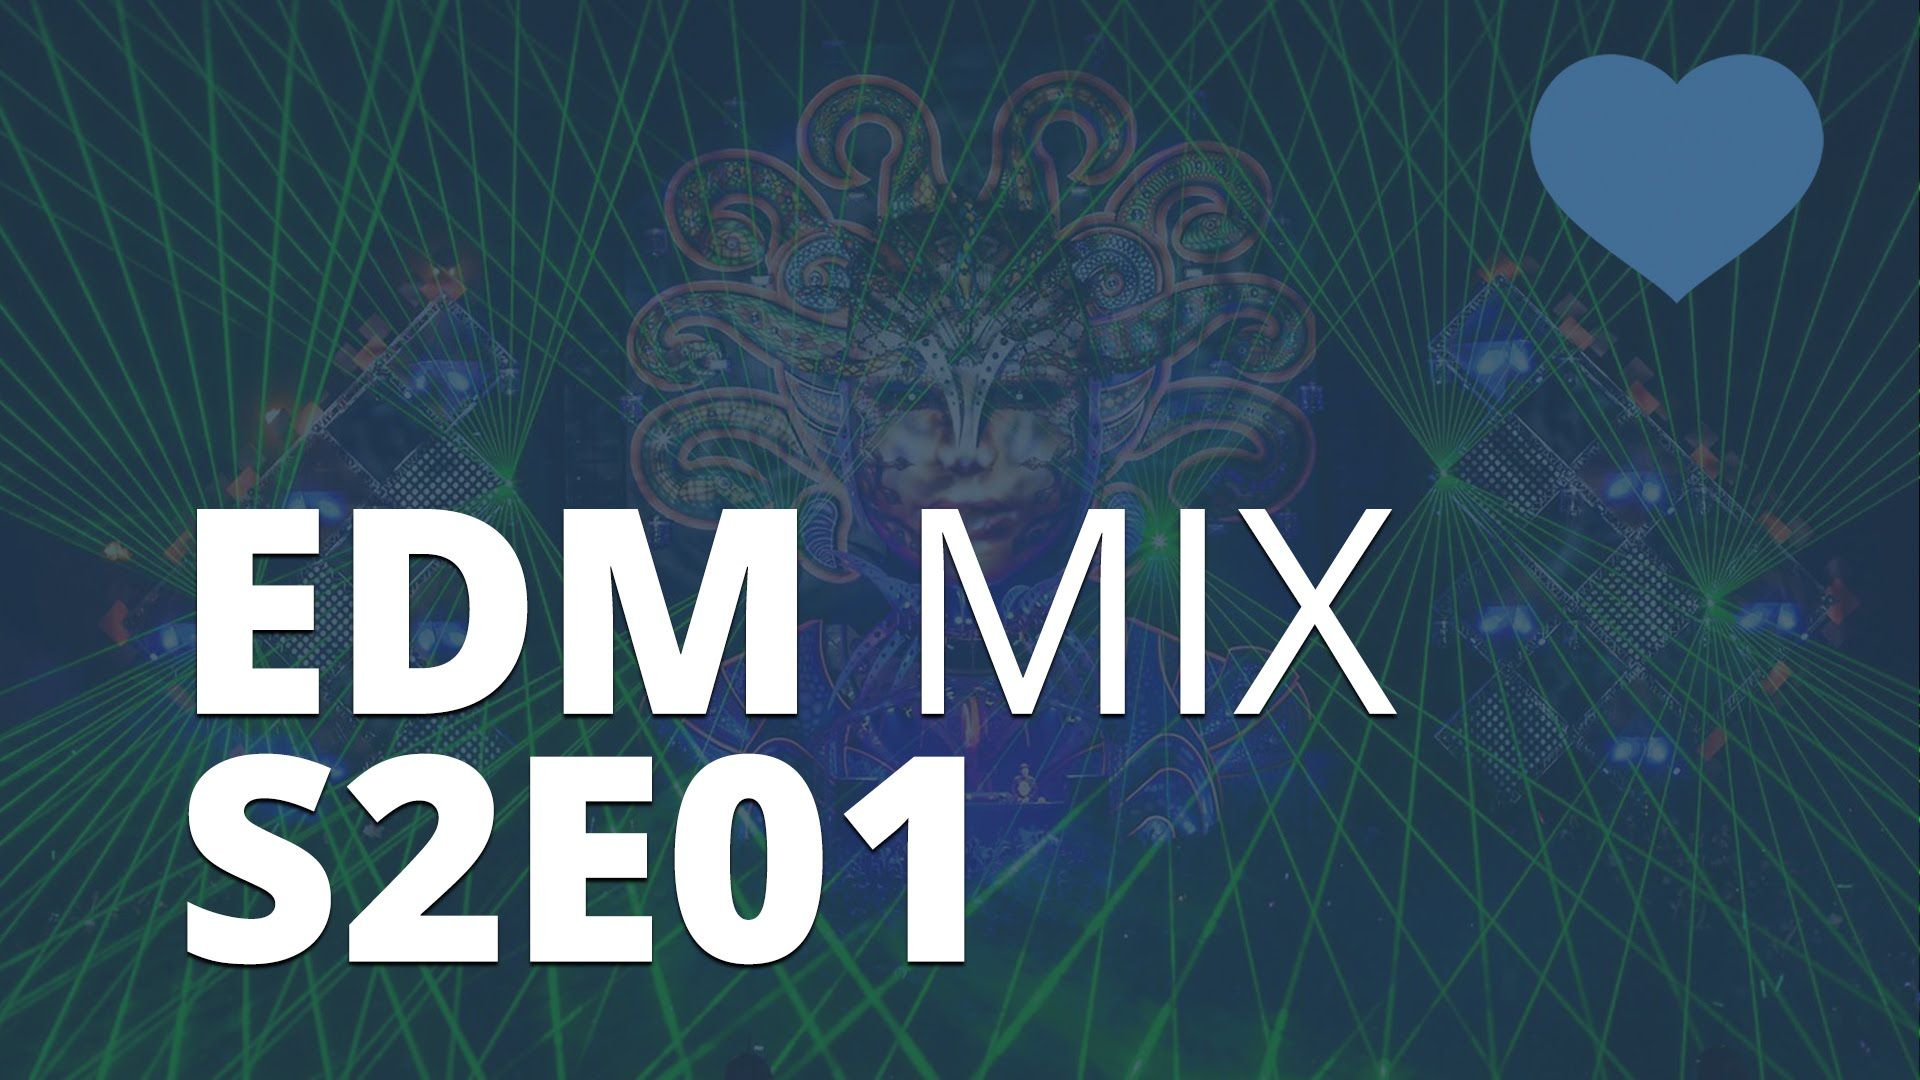 edm  Everyday we search, to bring you best Electronic Dance Music. EDM is our Guide. If you have any coment , you know what to do, and please give us a chance to learn and improve. ;-) We dont want to attemp against any copyright, we strong belive the artist are the most important part of EDM.  https://www.youtube.com/watch?v=2w1v0zbU4AY